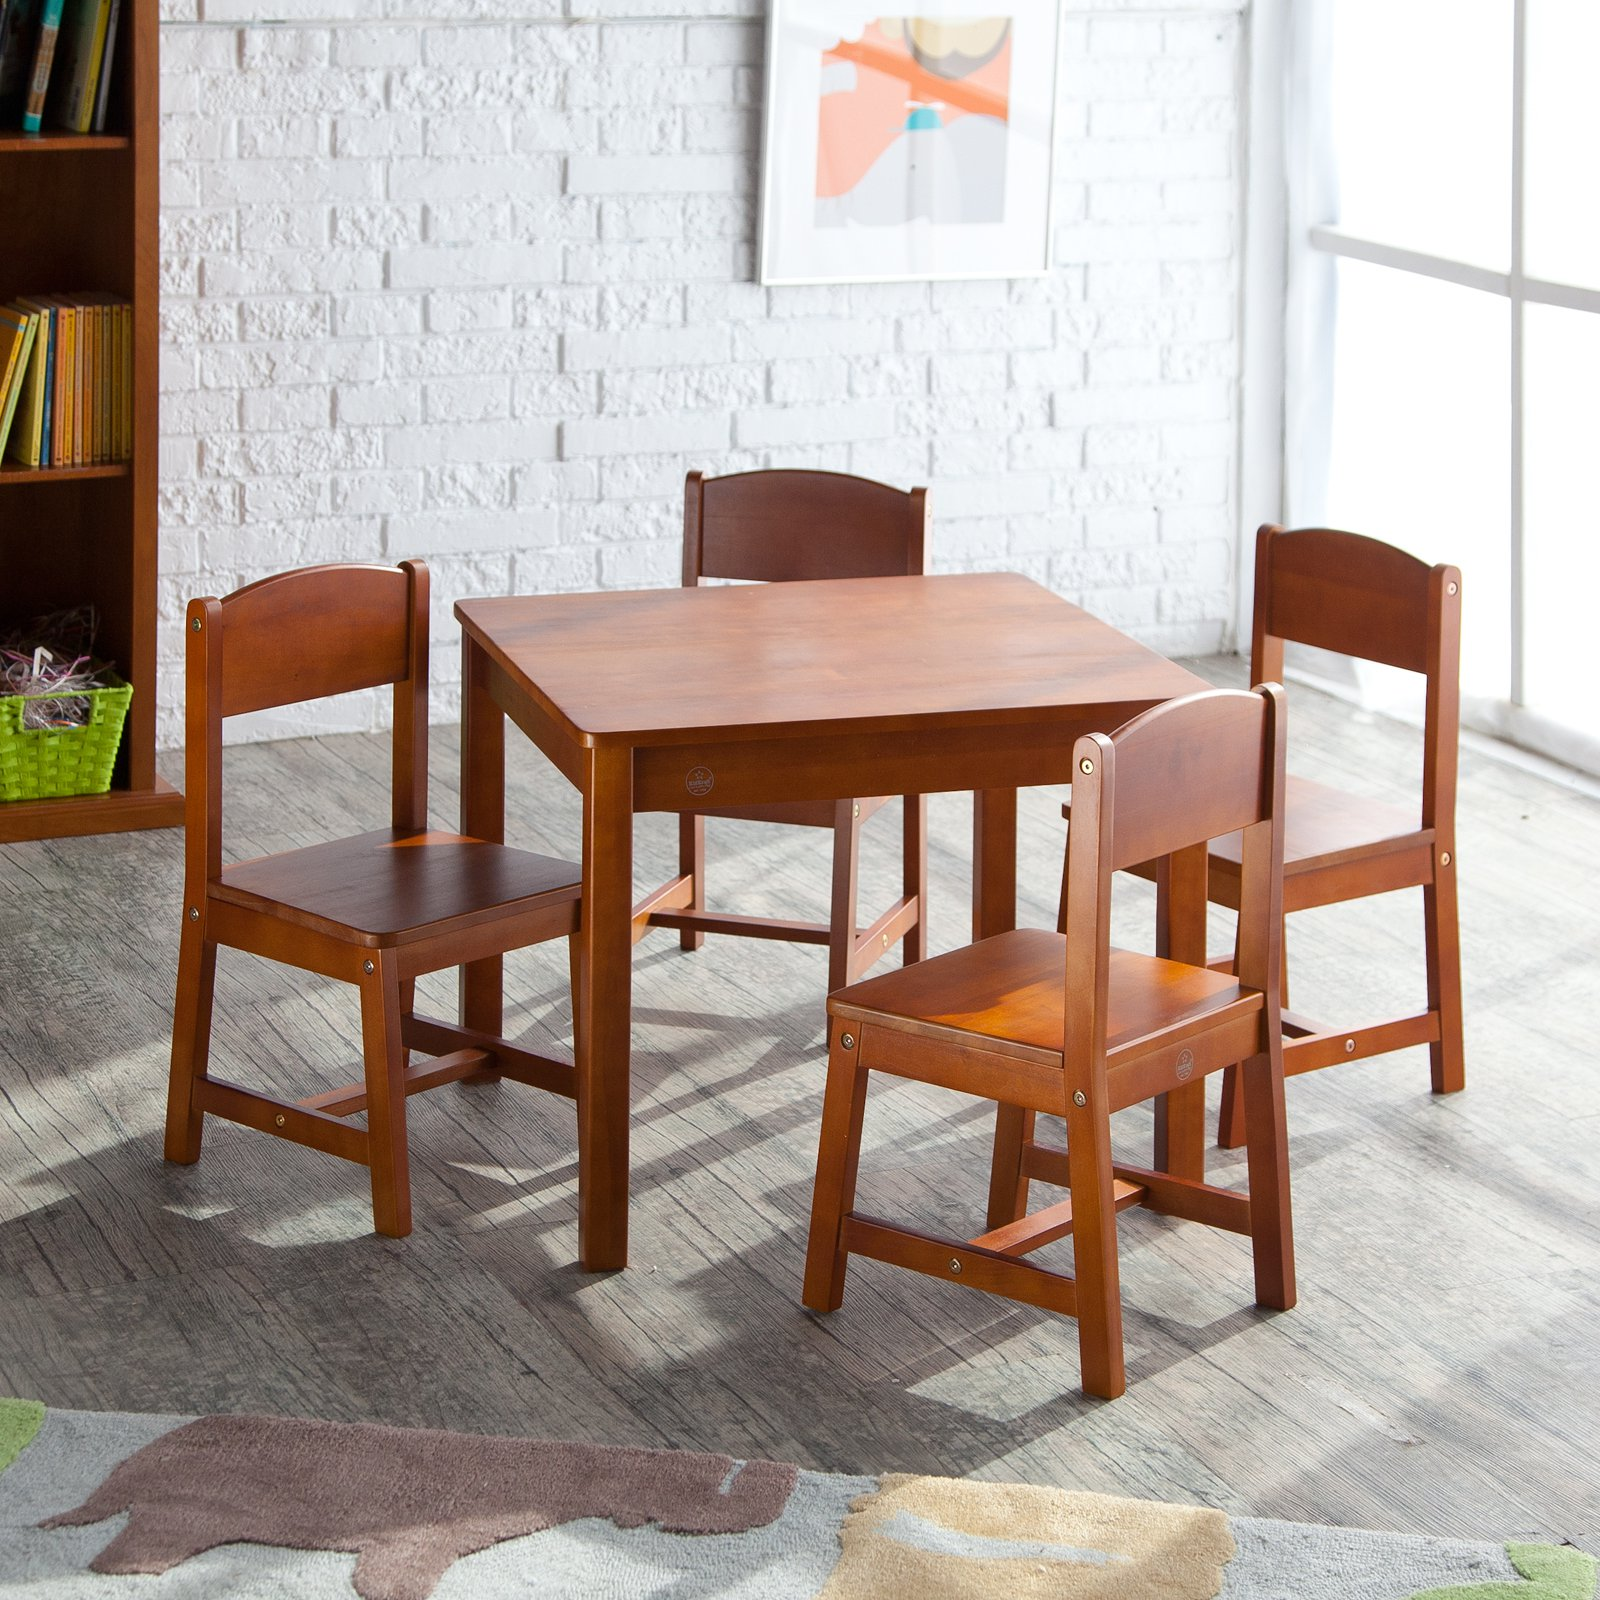 kidkraft farmhouse table and chair set espresso blue covers for sale wood 4 chairs multiple colors walmart com